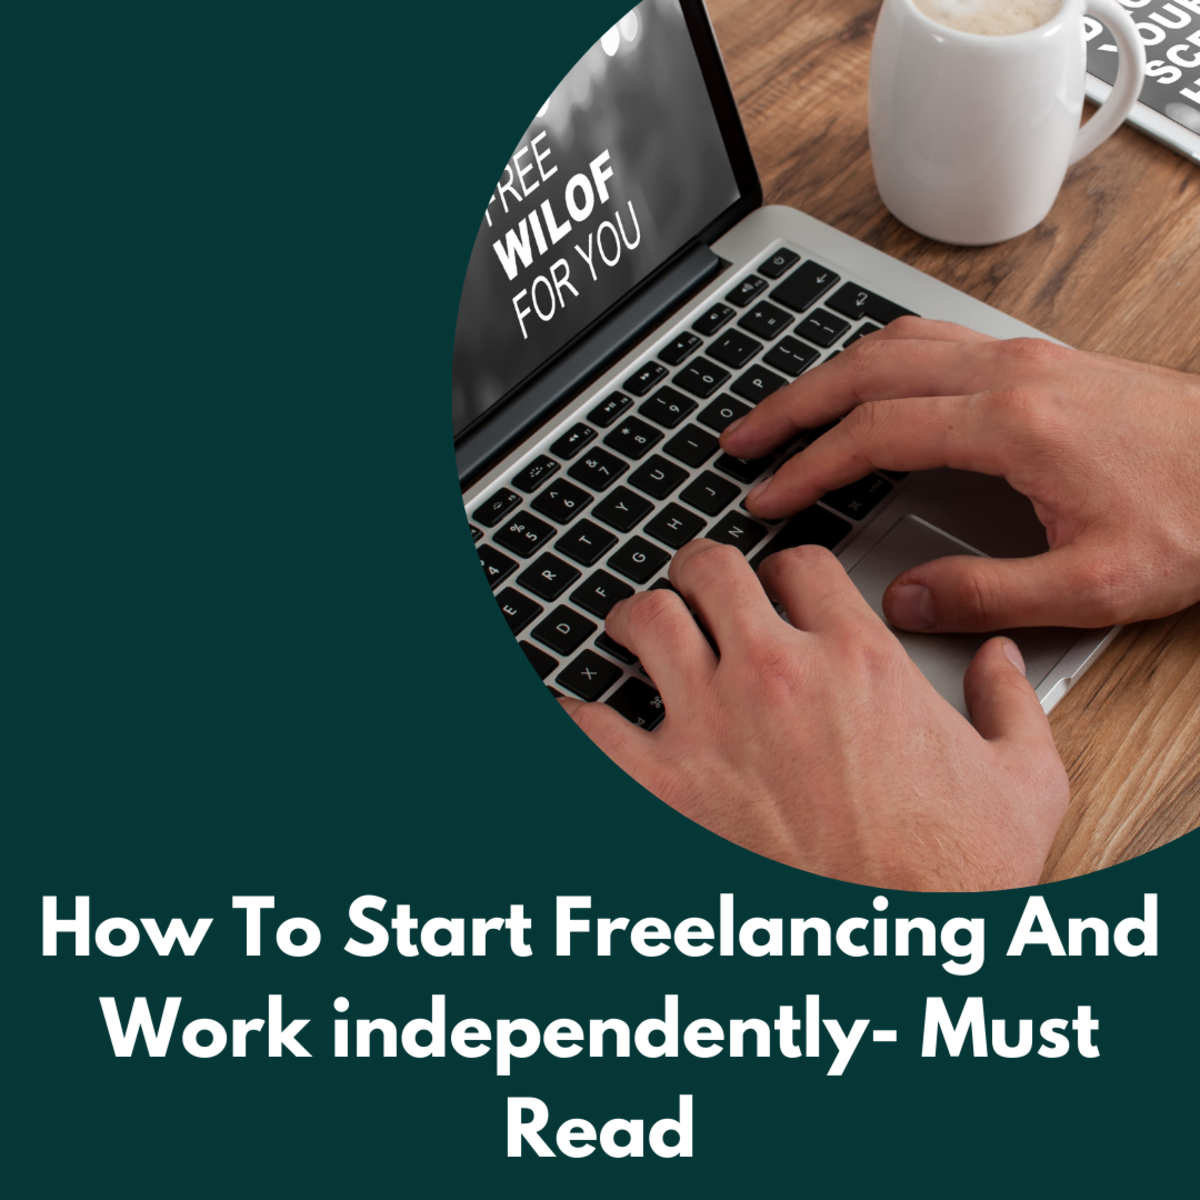 How to Start Freelancing and Work Independently- Must Read